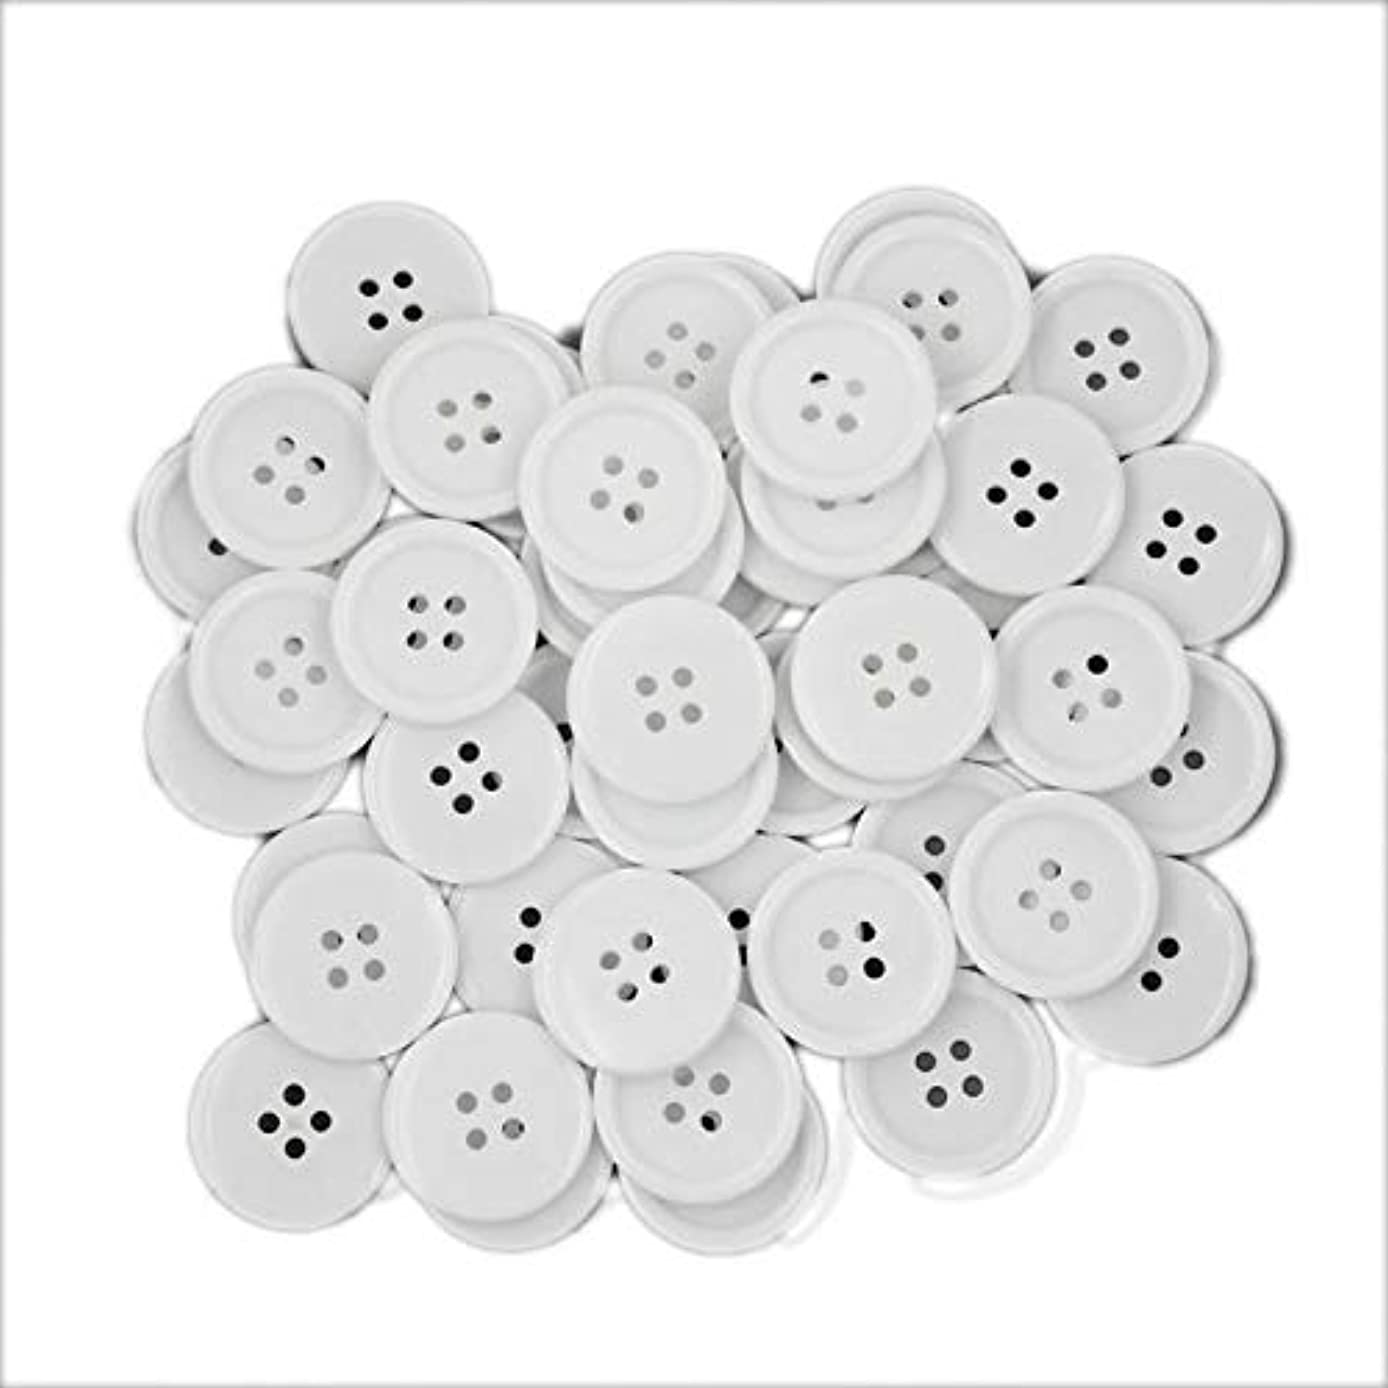 1Inch (25mm) Sewing Flatback Resin Buttons for DIY Craft White Pack of 50 Pcs Leekayer